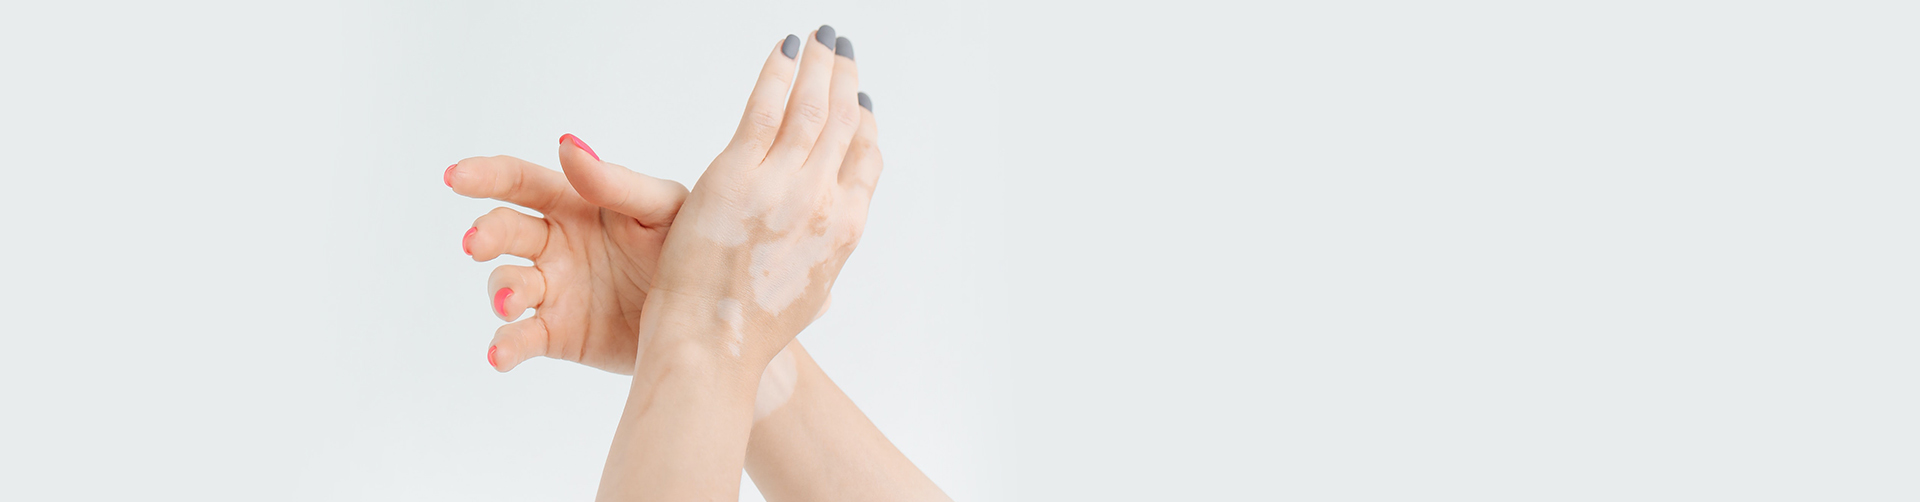 Is Vitiligo Contagious in India? Demystifying the Fact from the Myth